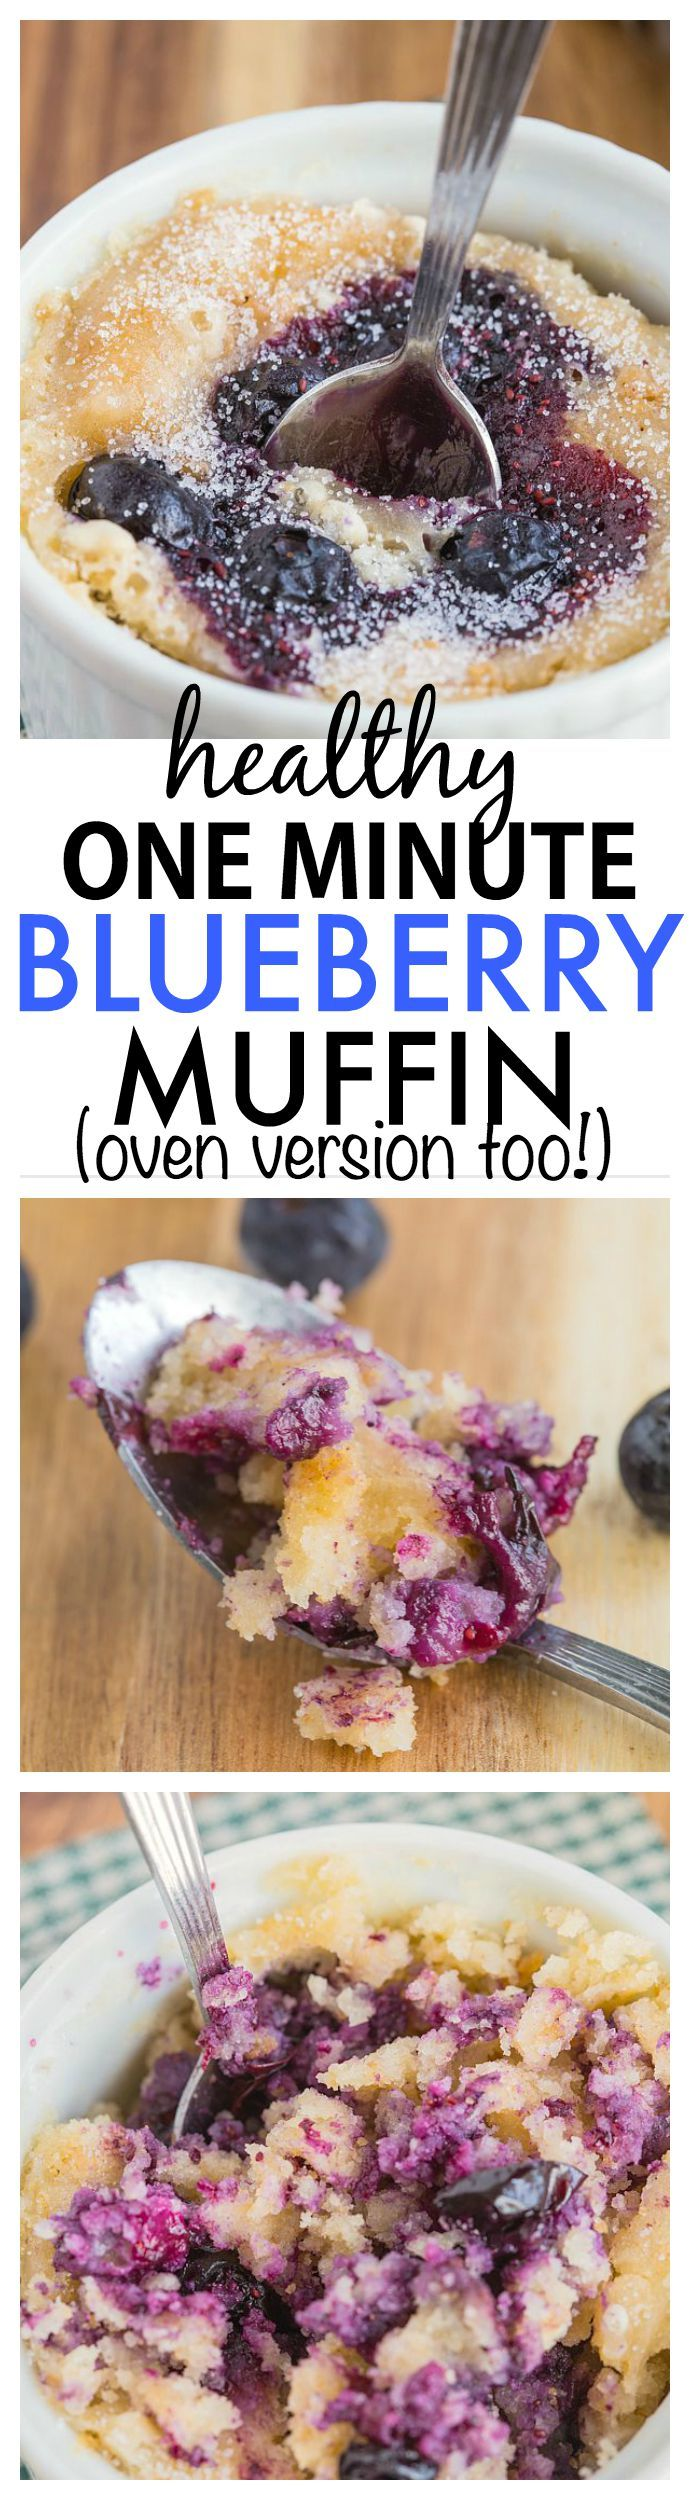 Healthy 1 Minute Blueberry Muffin- Inspired by Starbucks, you only need one minute to whip this healthy, moist, fluffy and delicious mug muffin- There is an oven version too! {vegan, gluten-free, paleo options}- thebigmansworld.com #mugcake #blueberrymuffin #healthy